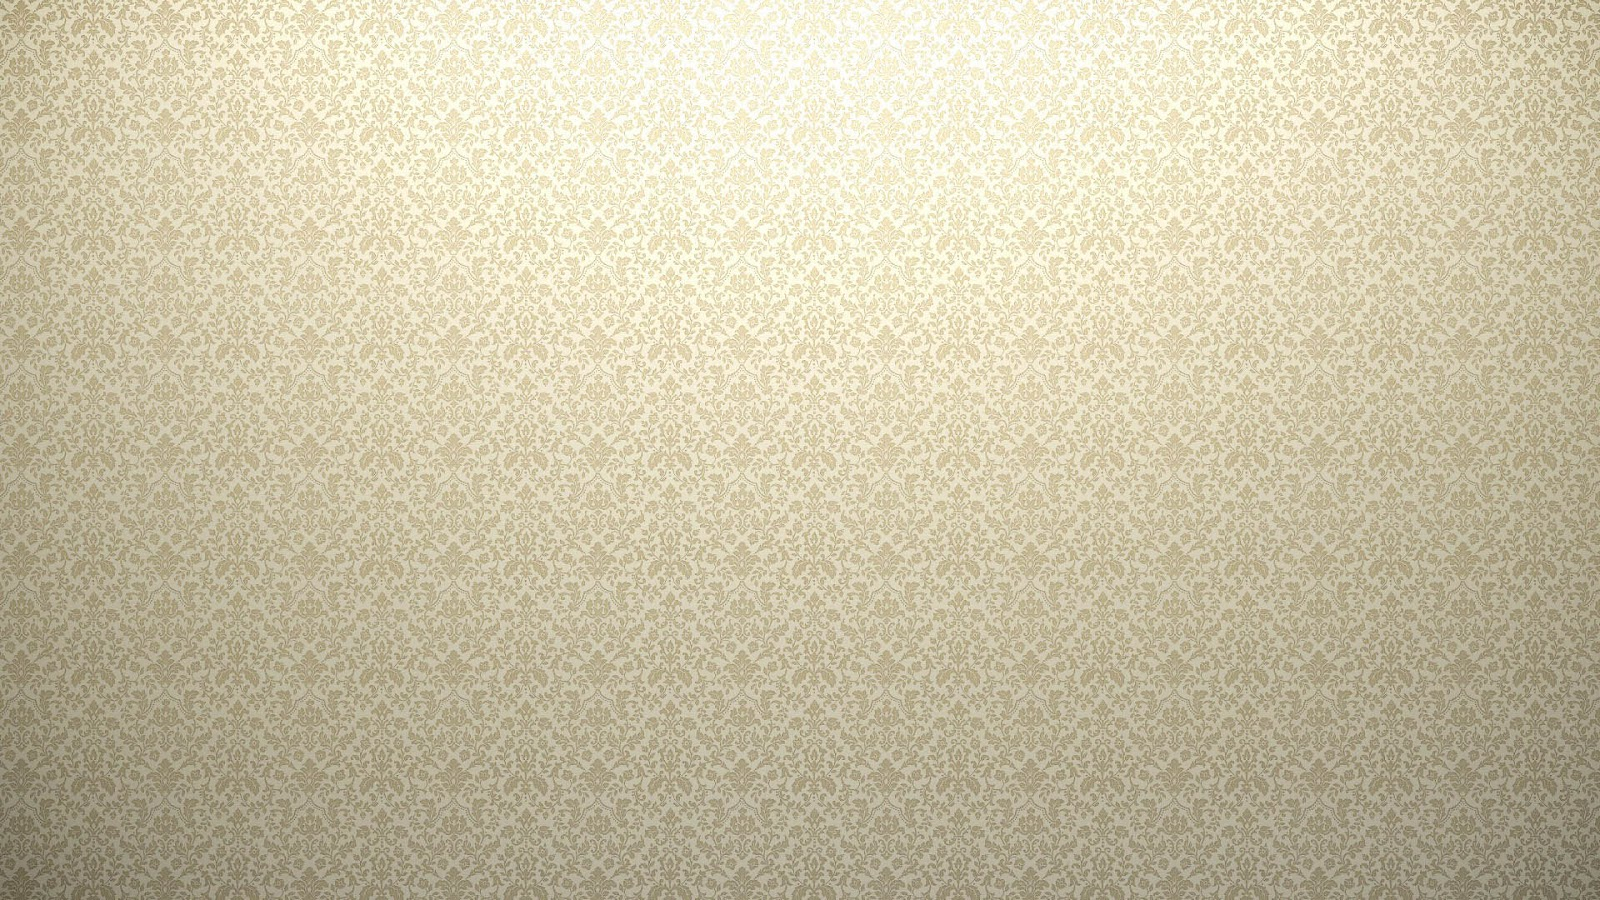 Hd wallpapers desktop simple plain hd desktop wallpapers Plain white wallpaper for walls